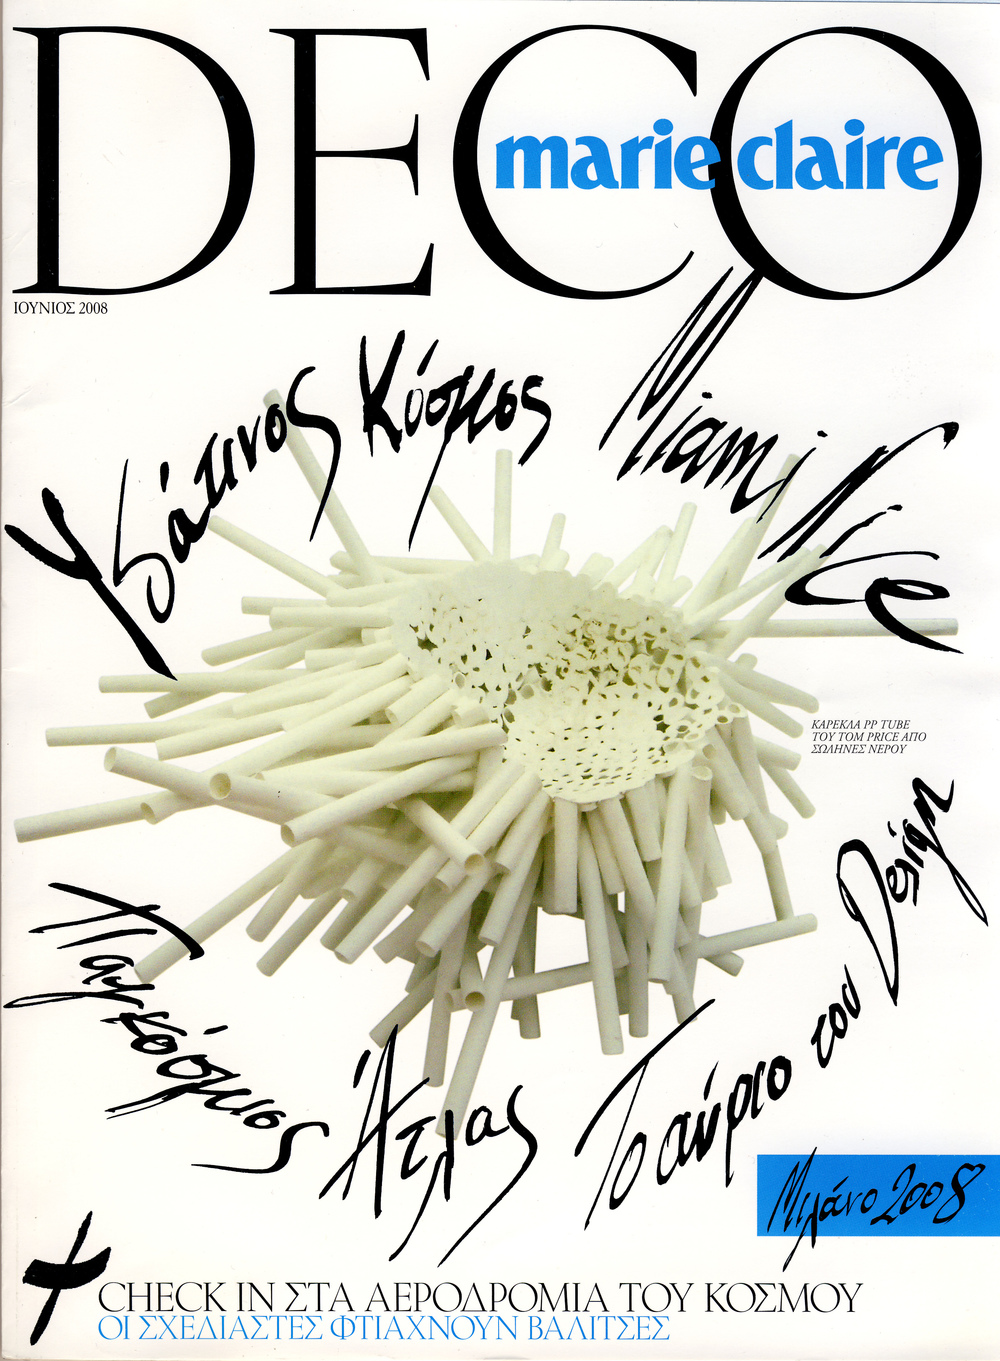 Marie Claire Deco.jpg